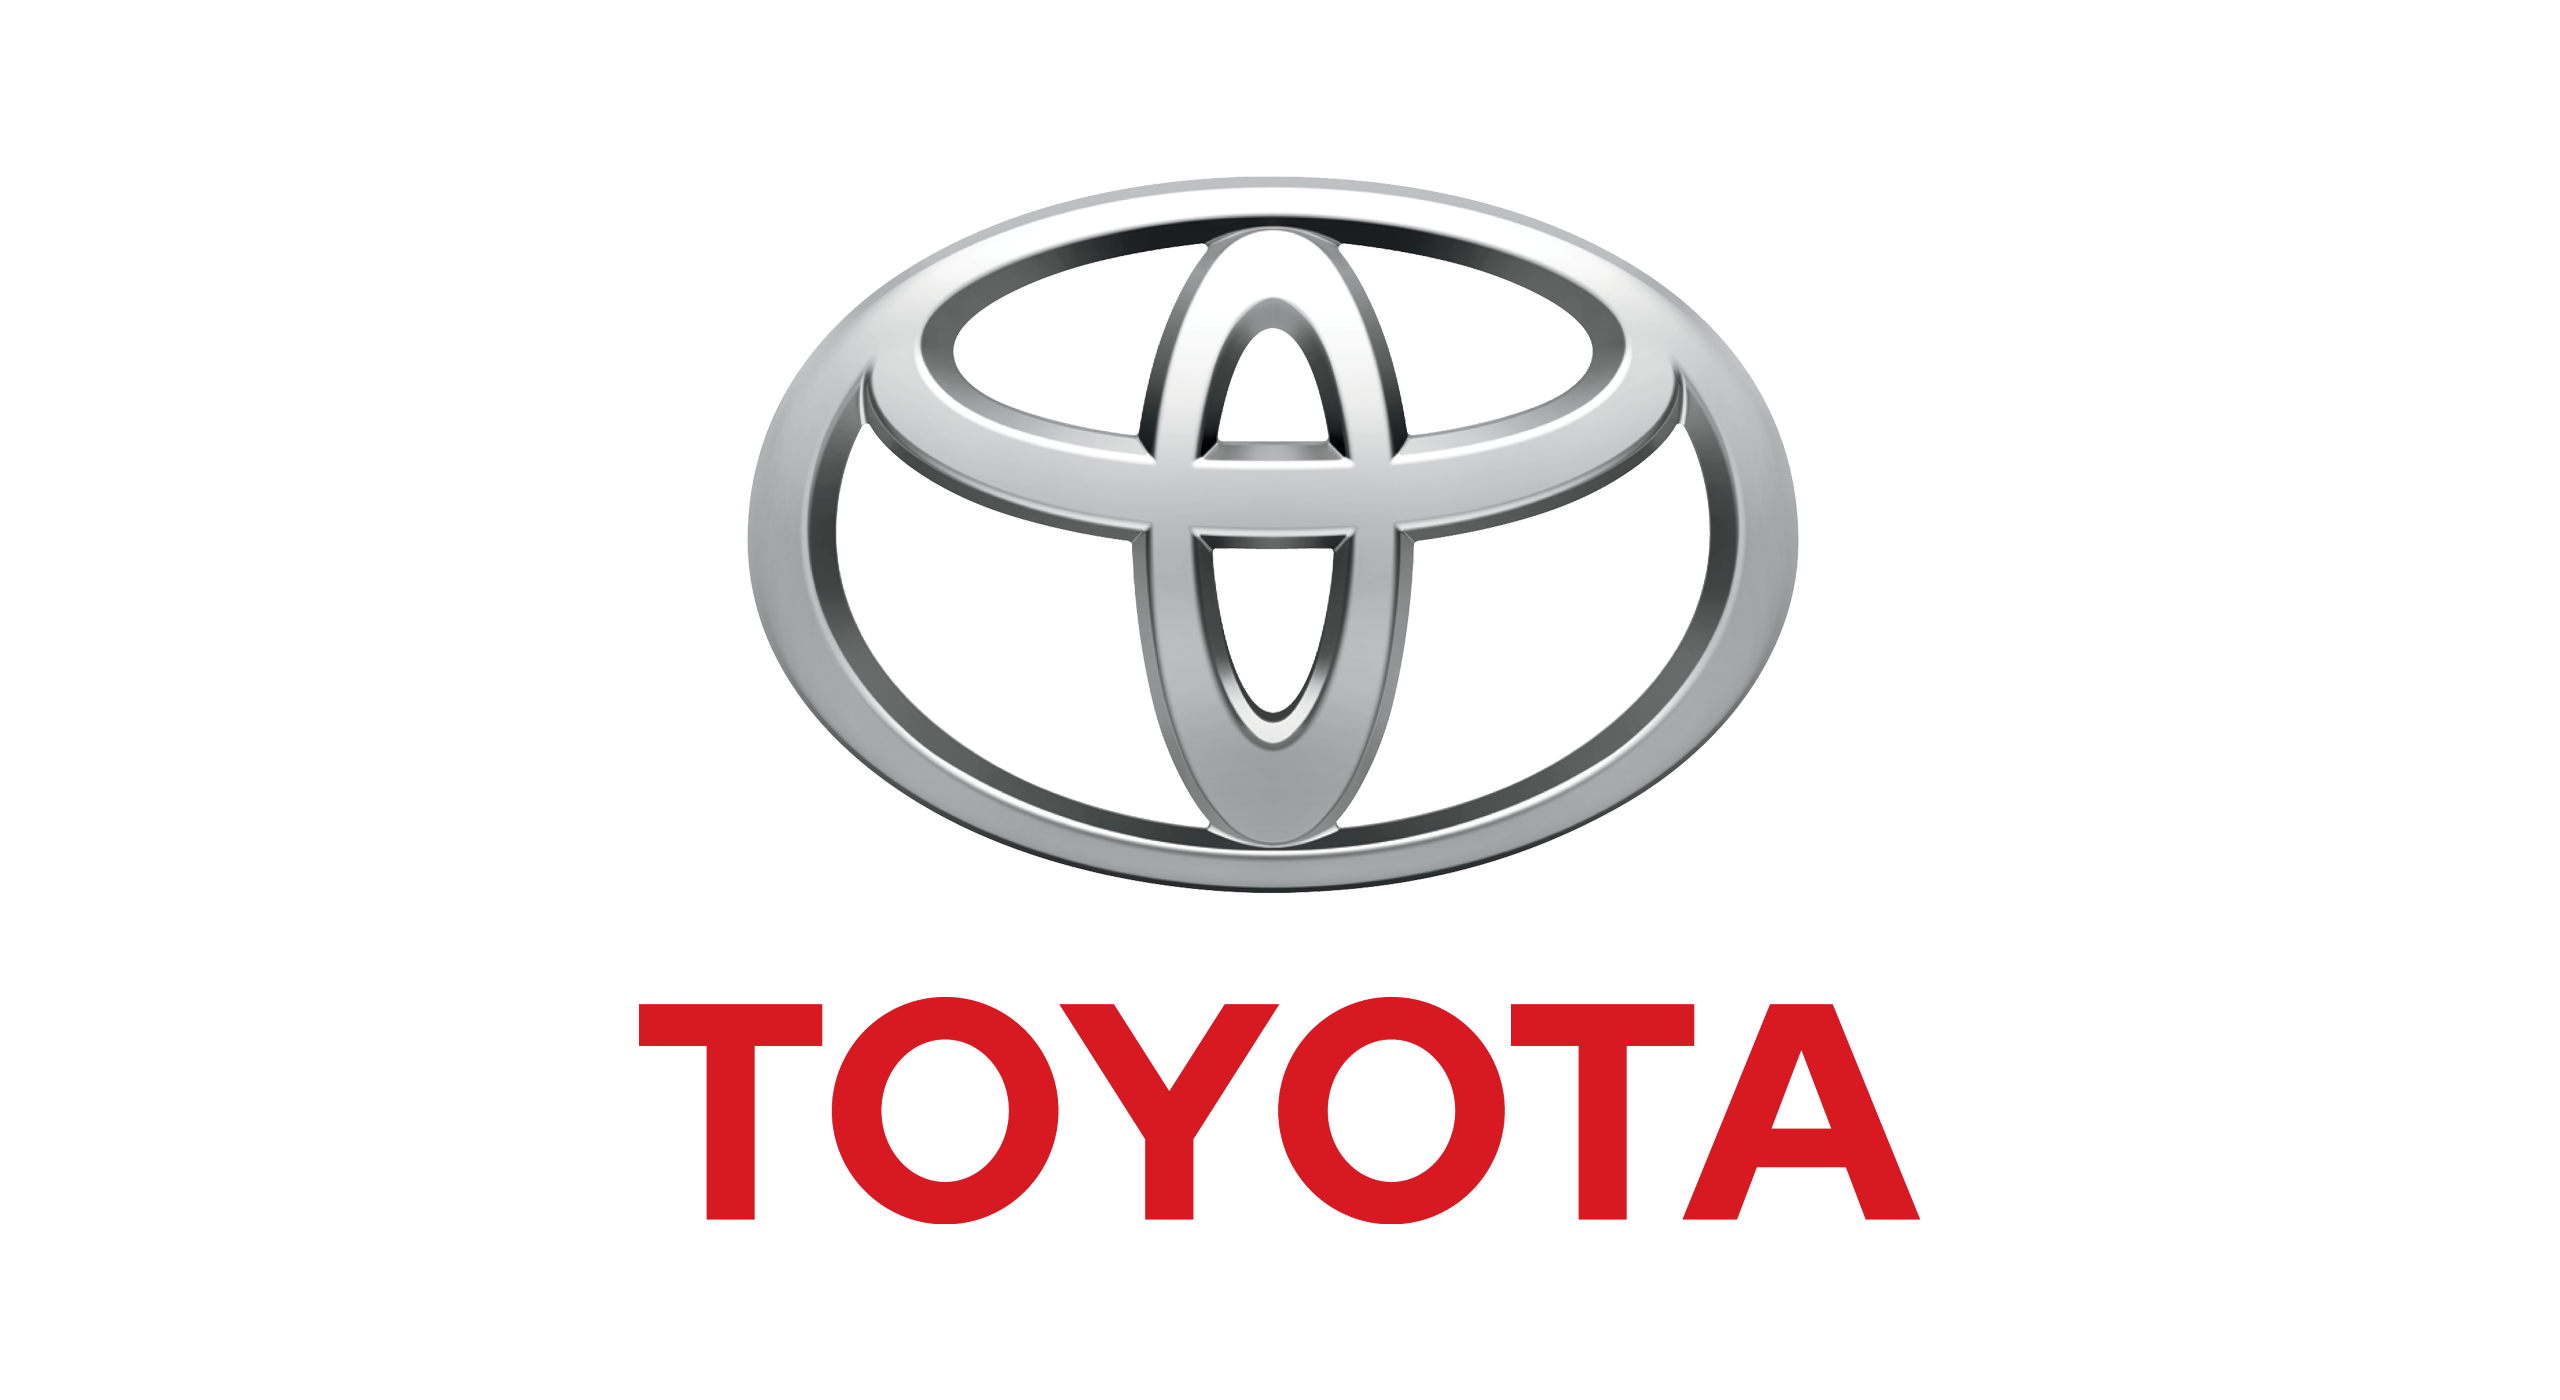 Pin By Johnny Elf On Automobile Logos Pinterest Toyota Cars